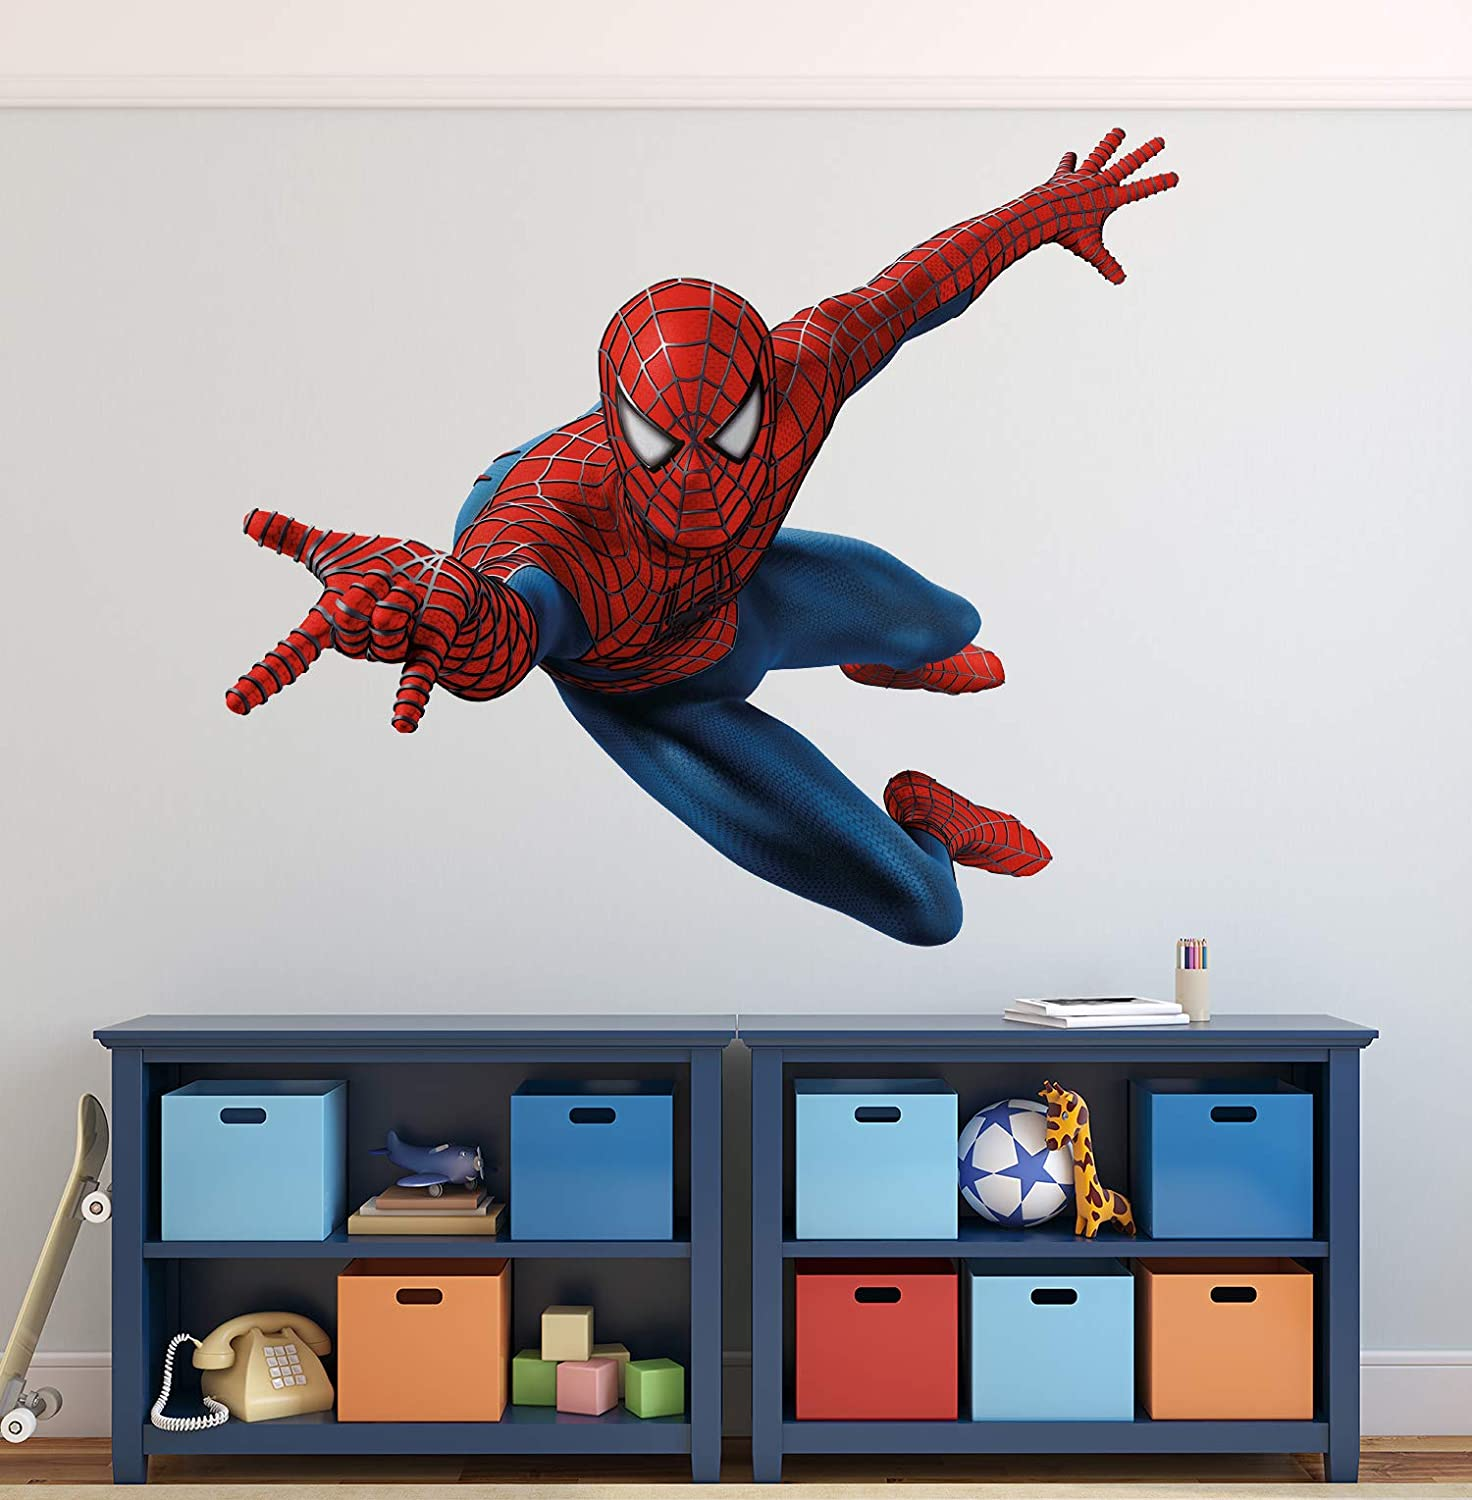 Superhero Wall Decals Boys Kids Room Wall Decor Spider Man Wall Art Decal Custom Gift Mural Poster Mural Vinyl Wall Stickers for Kids Room Peel & Stick Removable (44